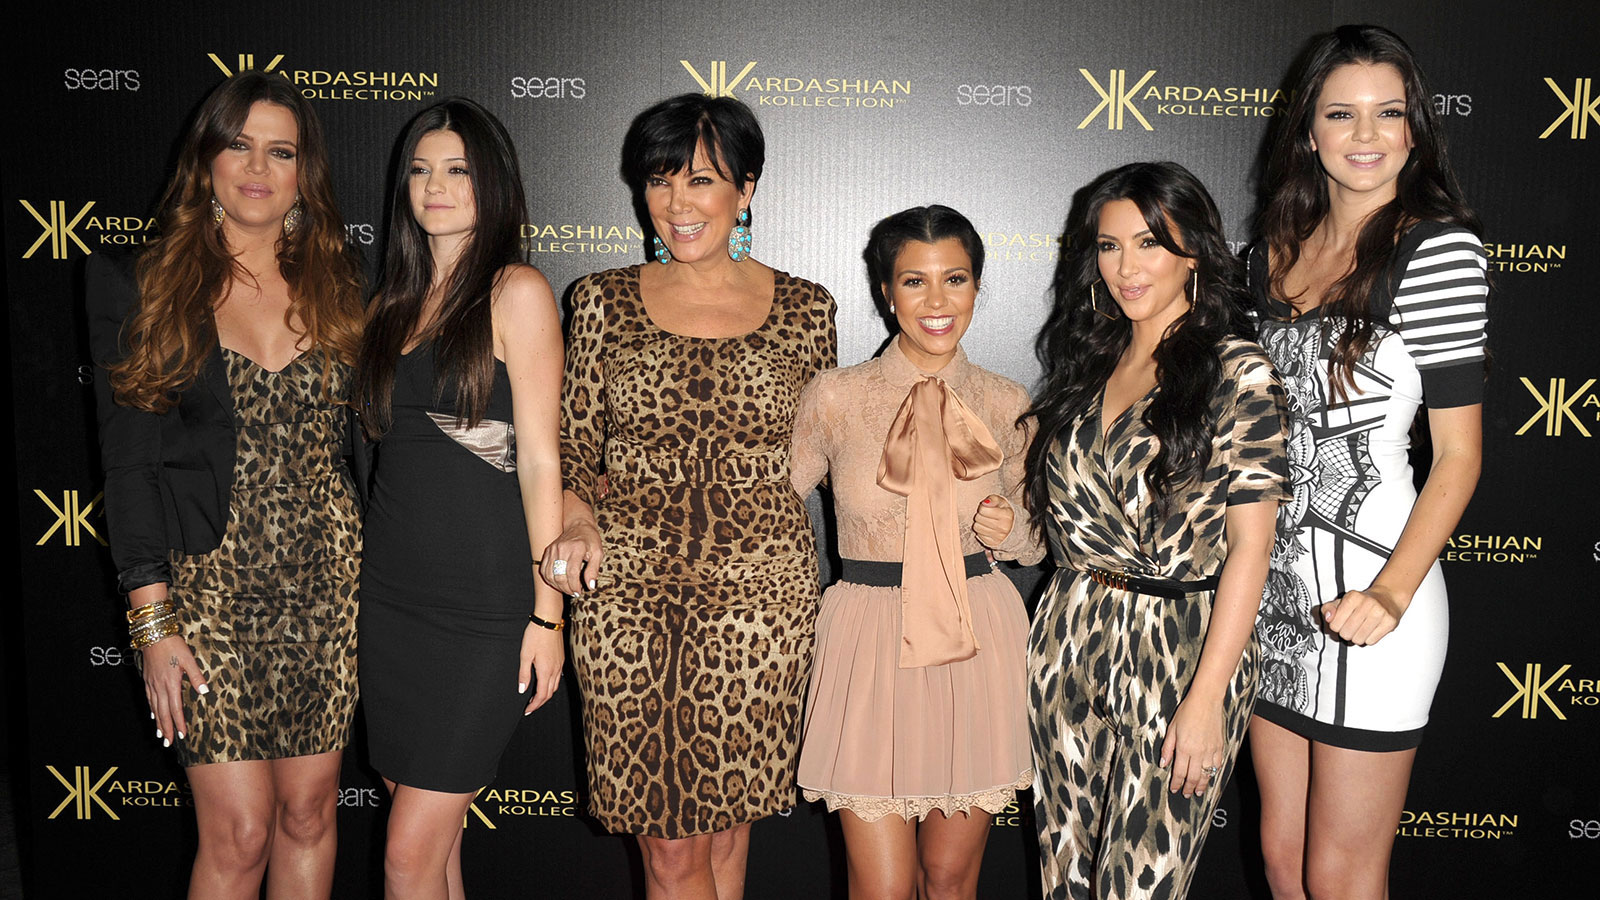 Kris Jenner Confirms That Her Daughters Earn Serious Cash With IG Promotions